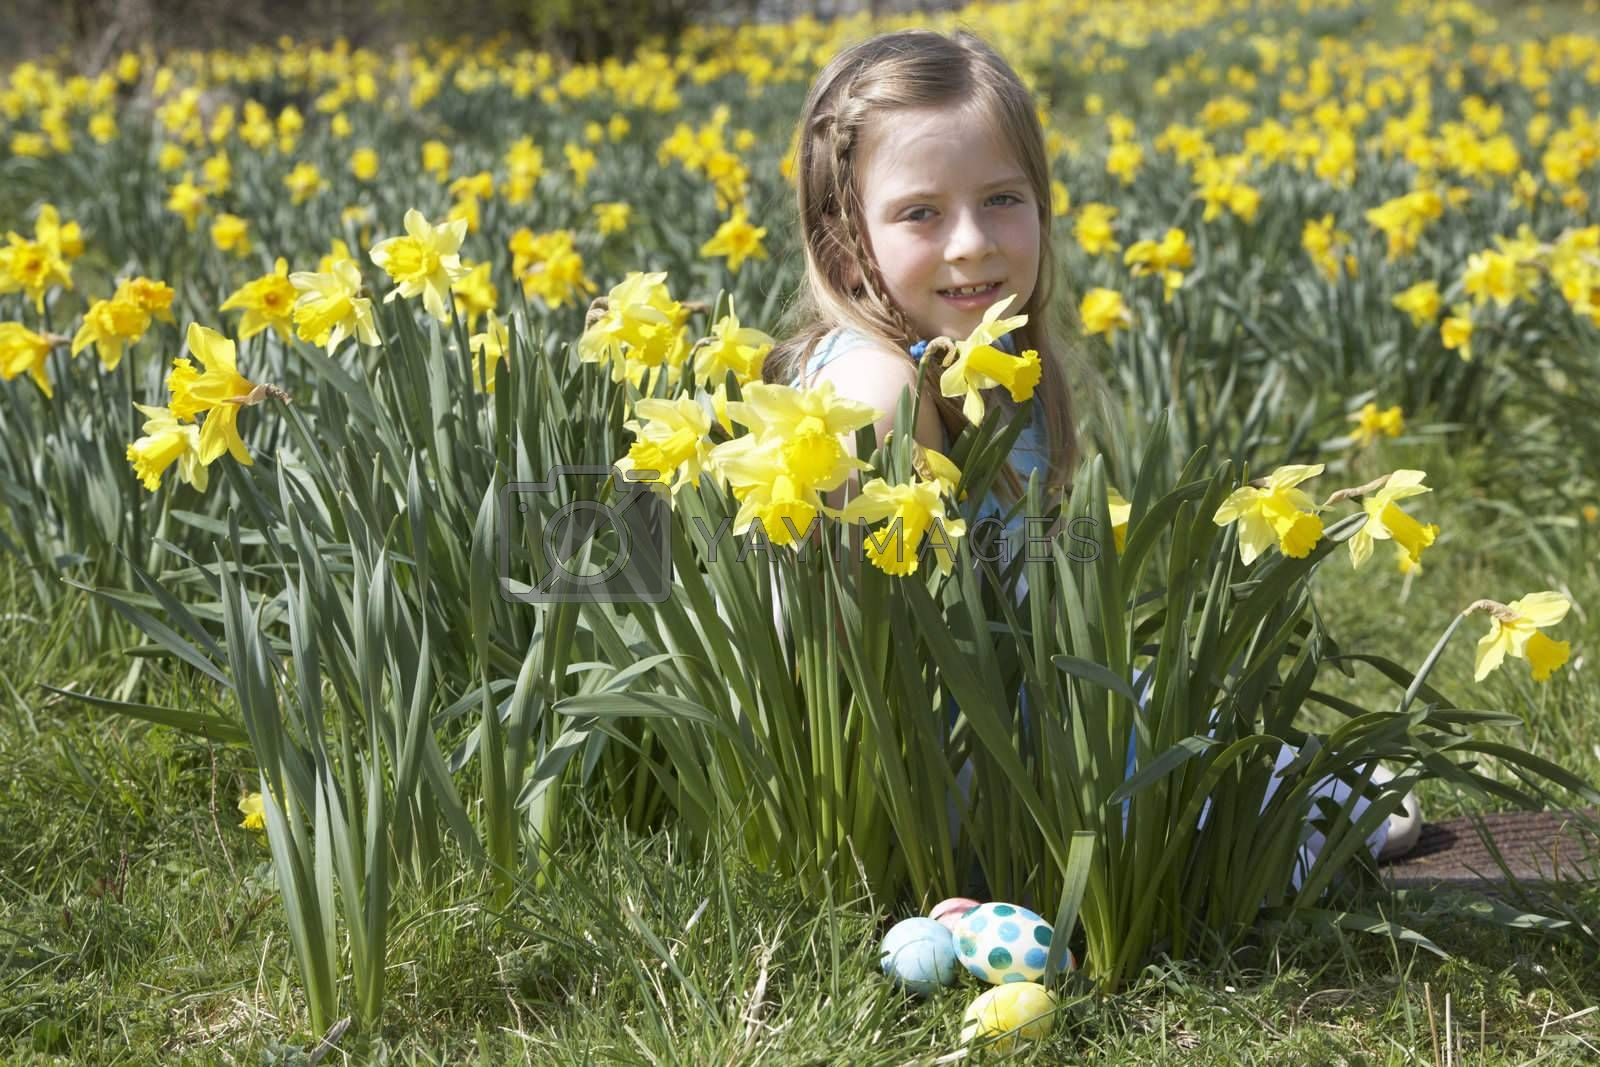 Royalty free image of Girl On Easter Egg Hunt In Daffodil Field by omg_images